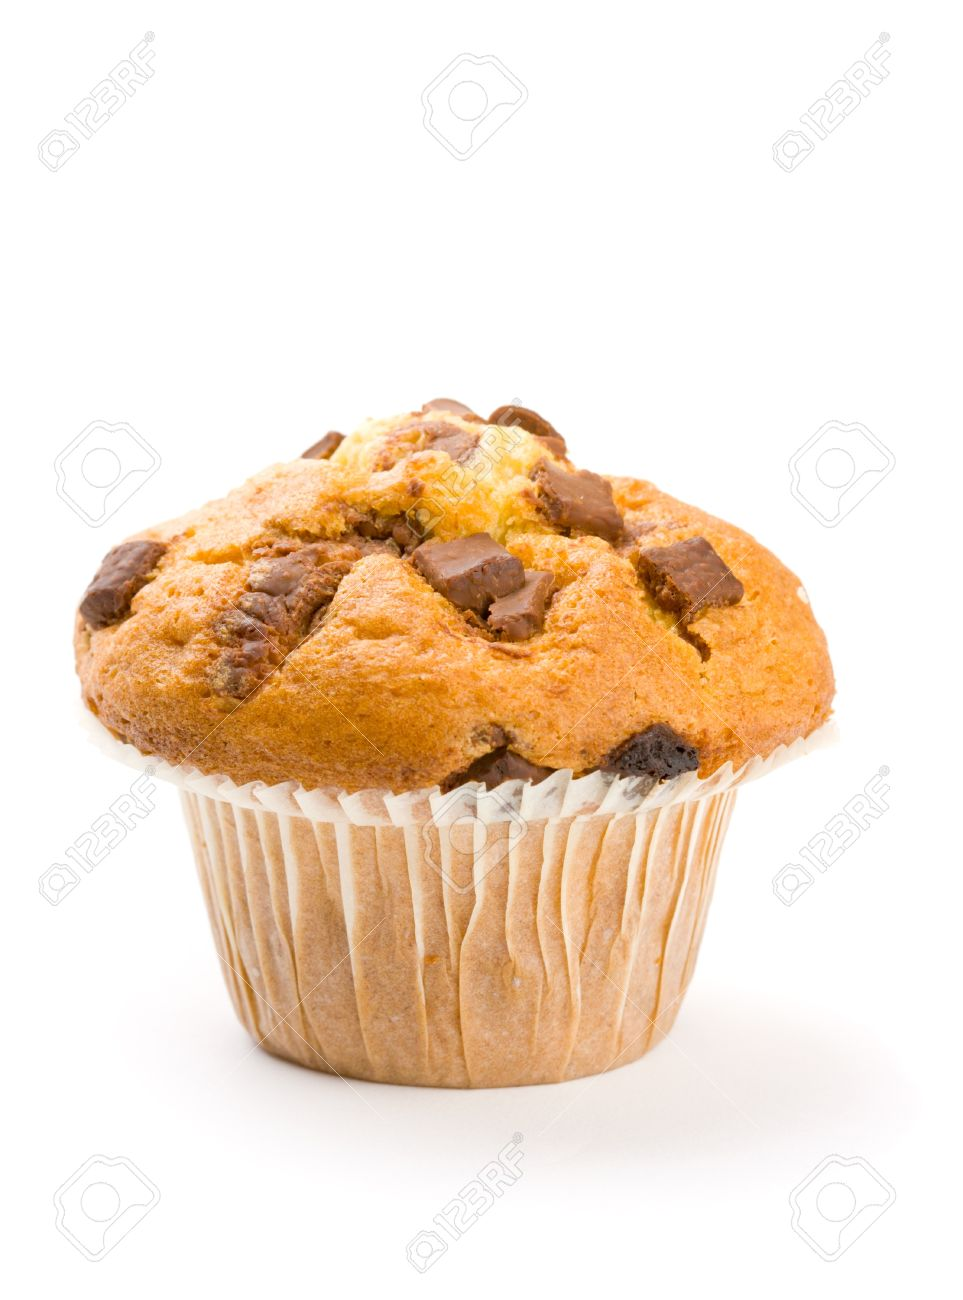 Chocolate Chip Muffin Focus On Front Chocolate Chips Stock Photo ...